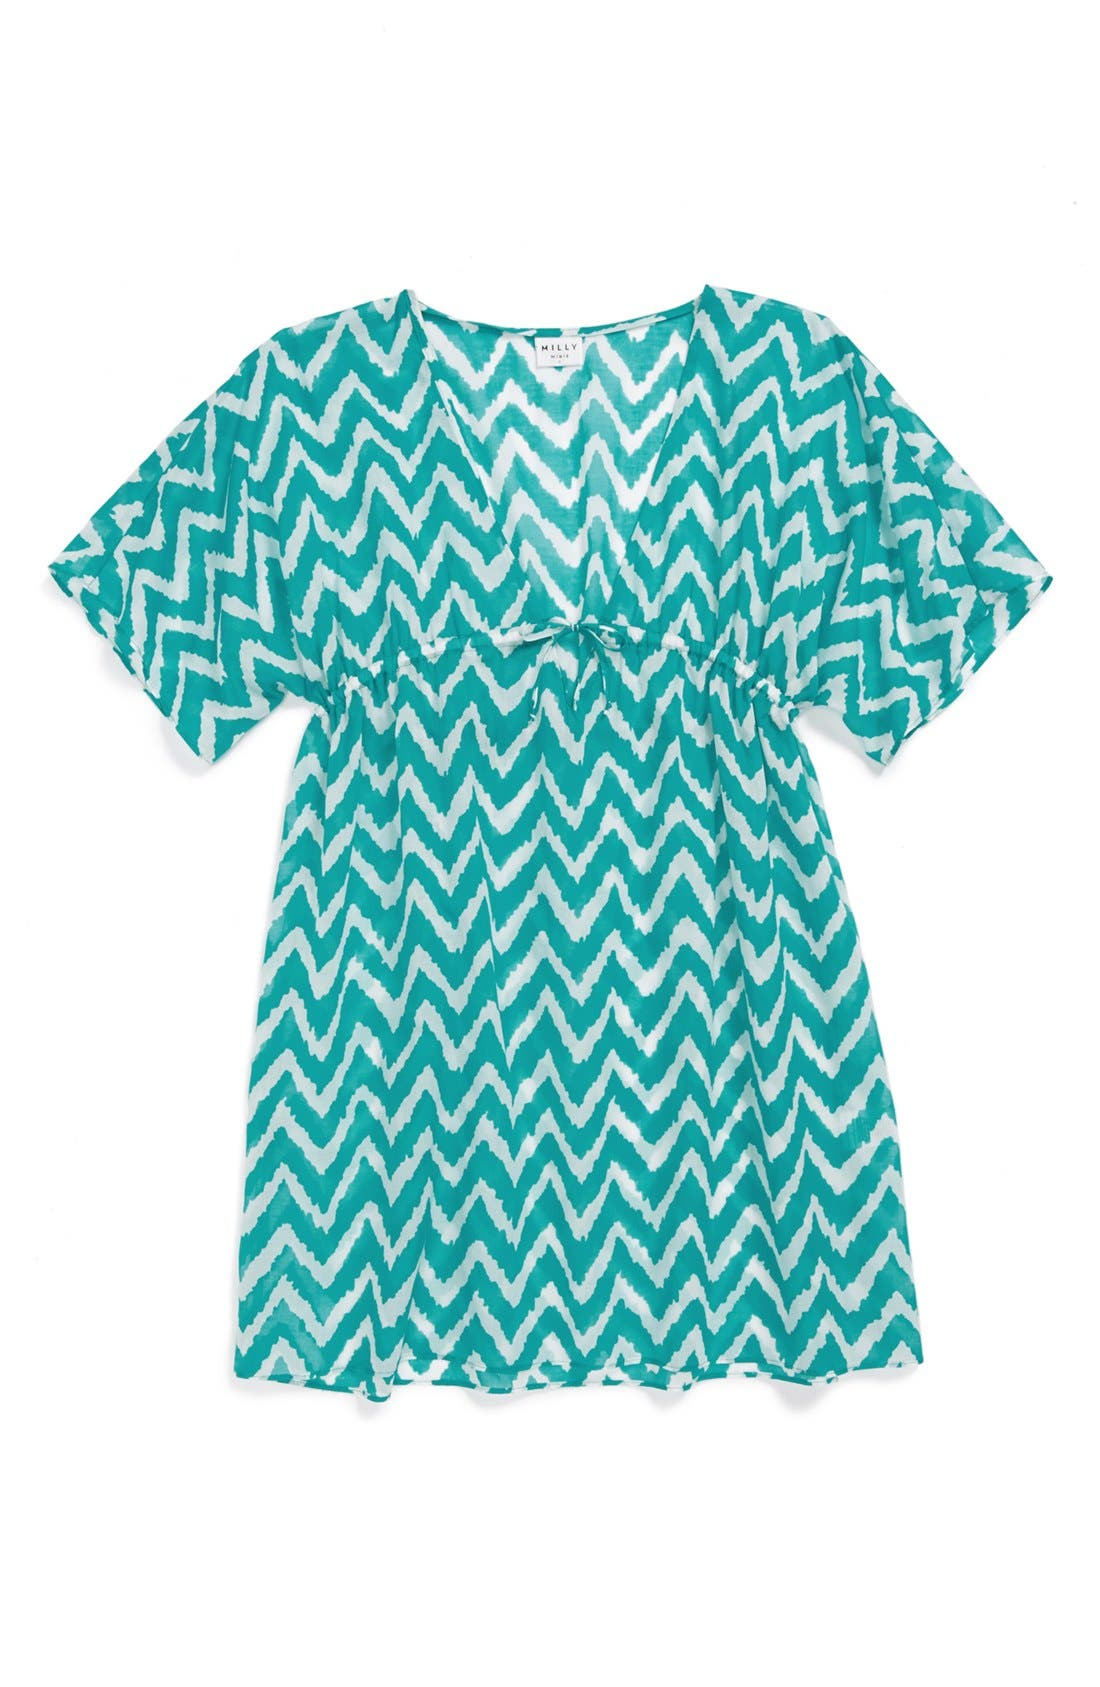 Alternate Image 1 Selected - Milly Minis Print Cover-Up (Big Girls)